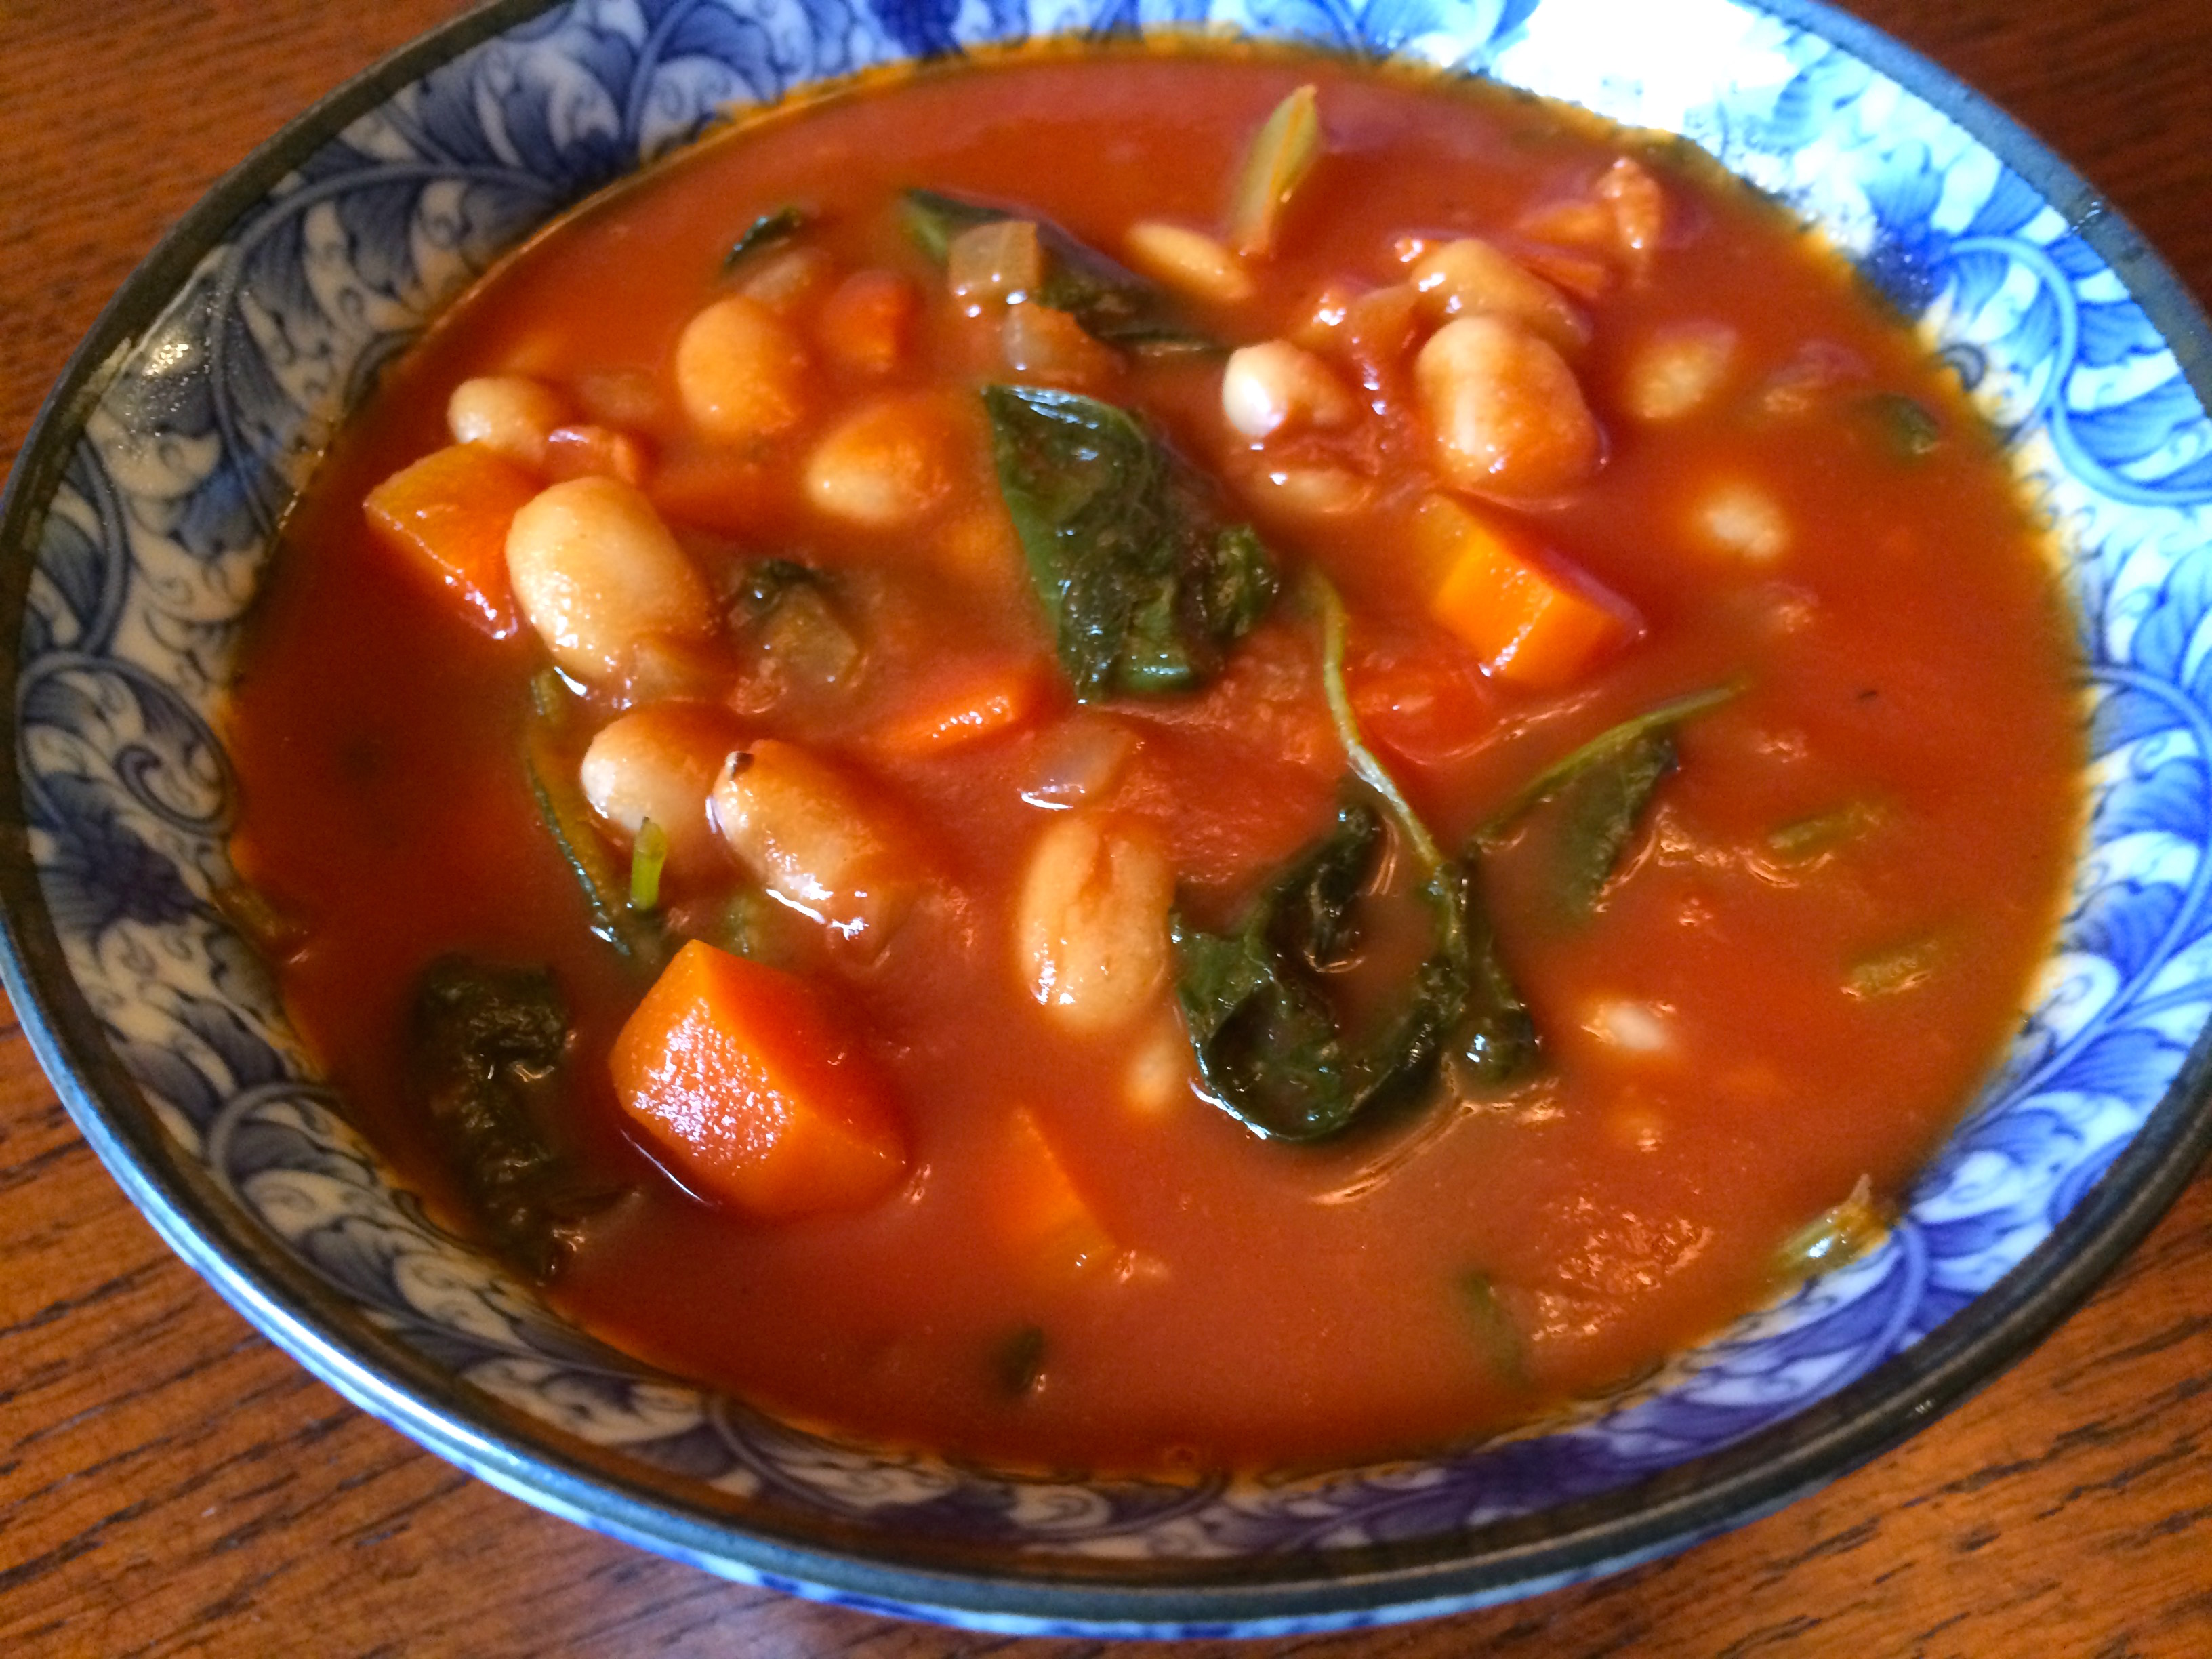 Kale, Tomato, and Cannellini Bean Soup